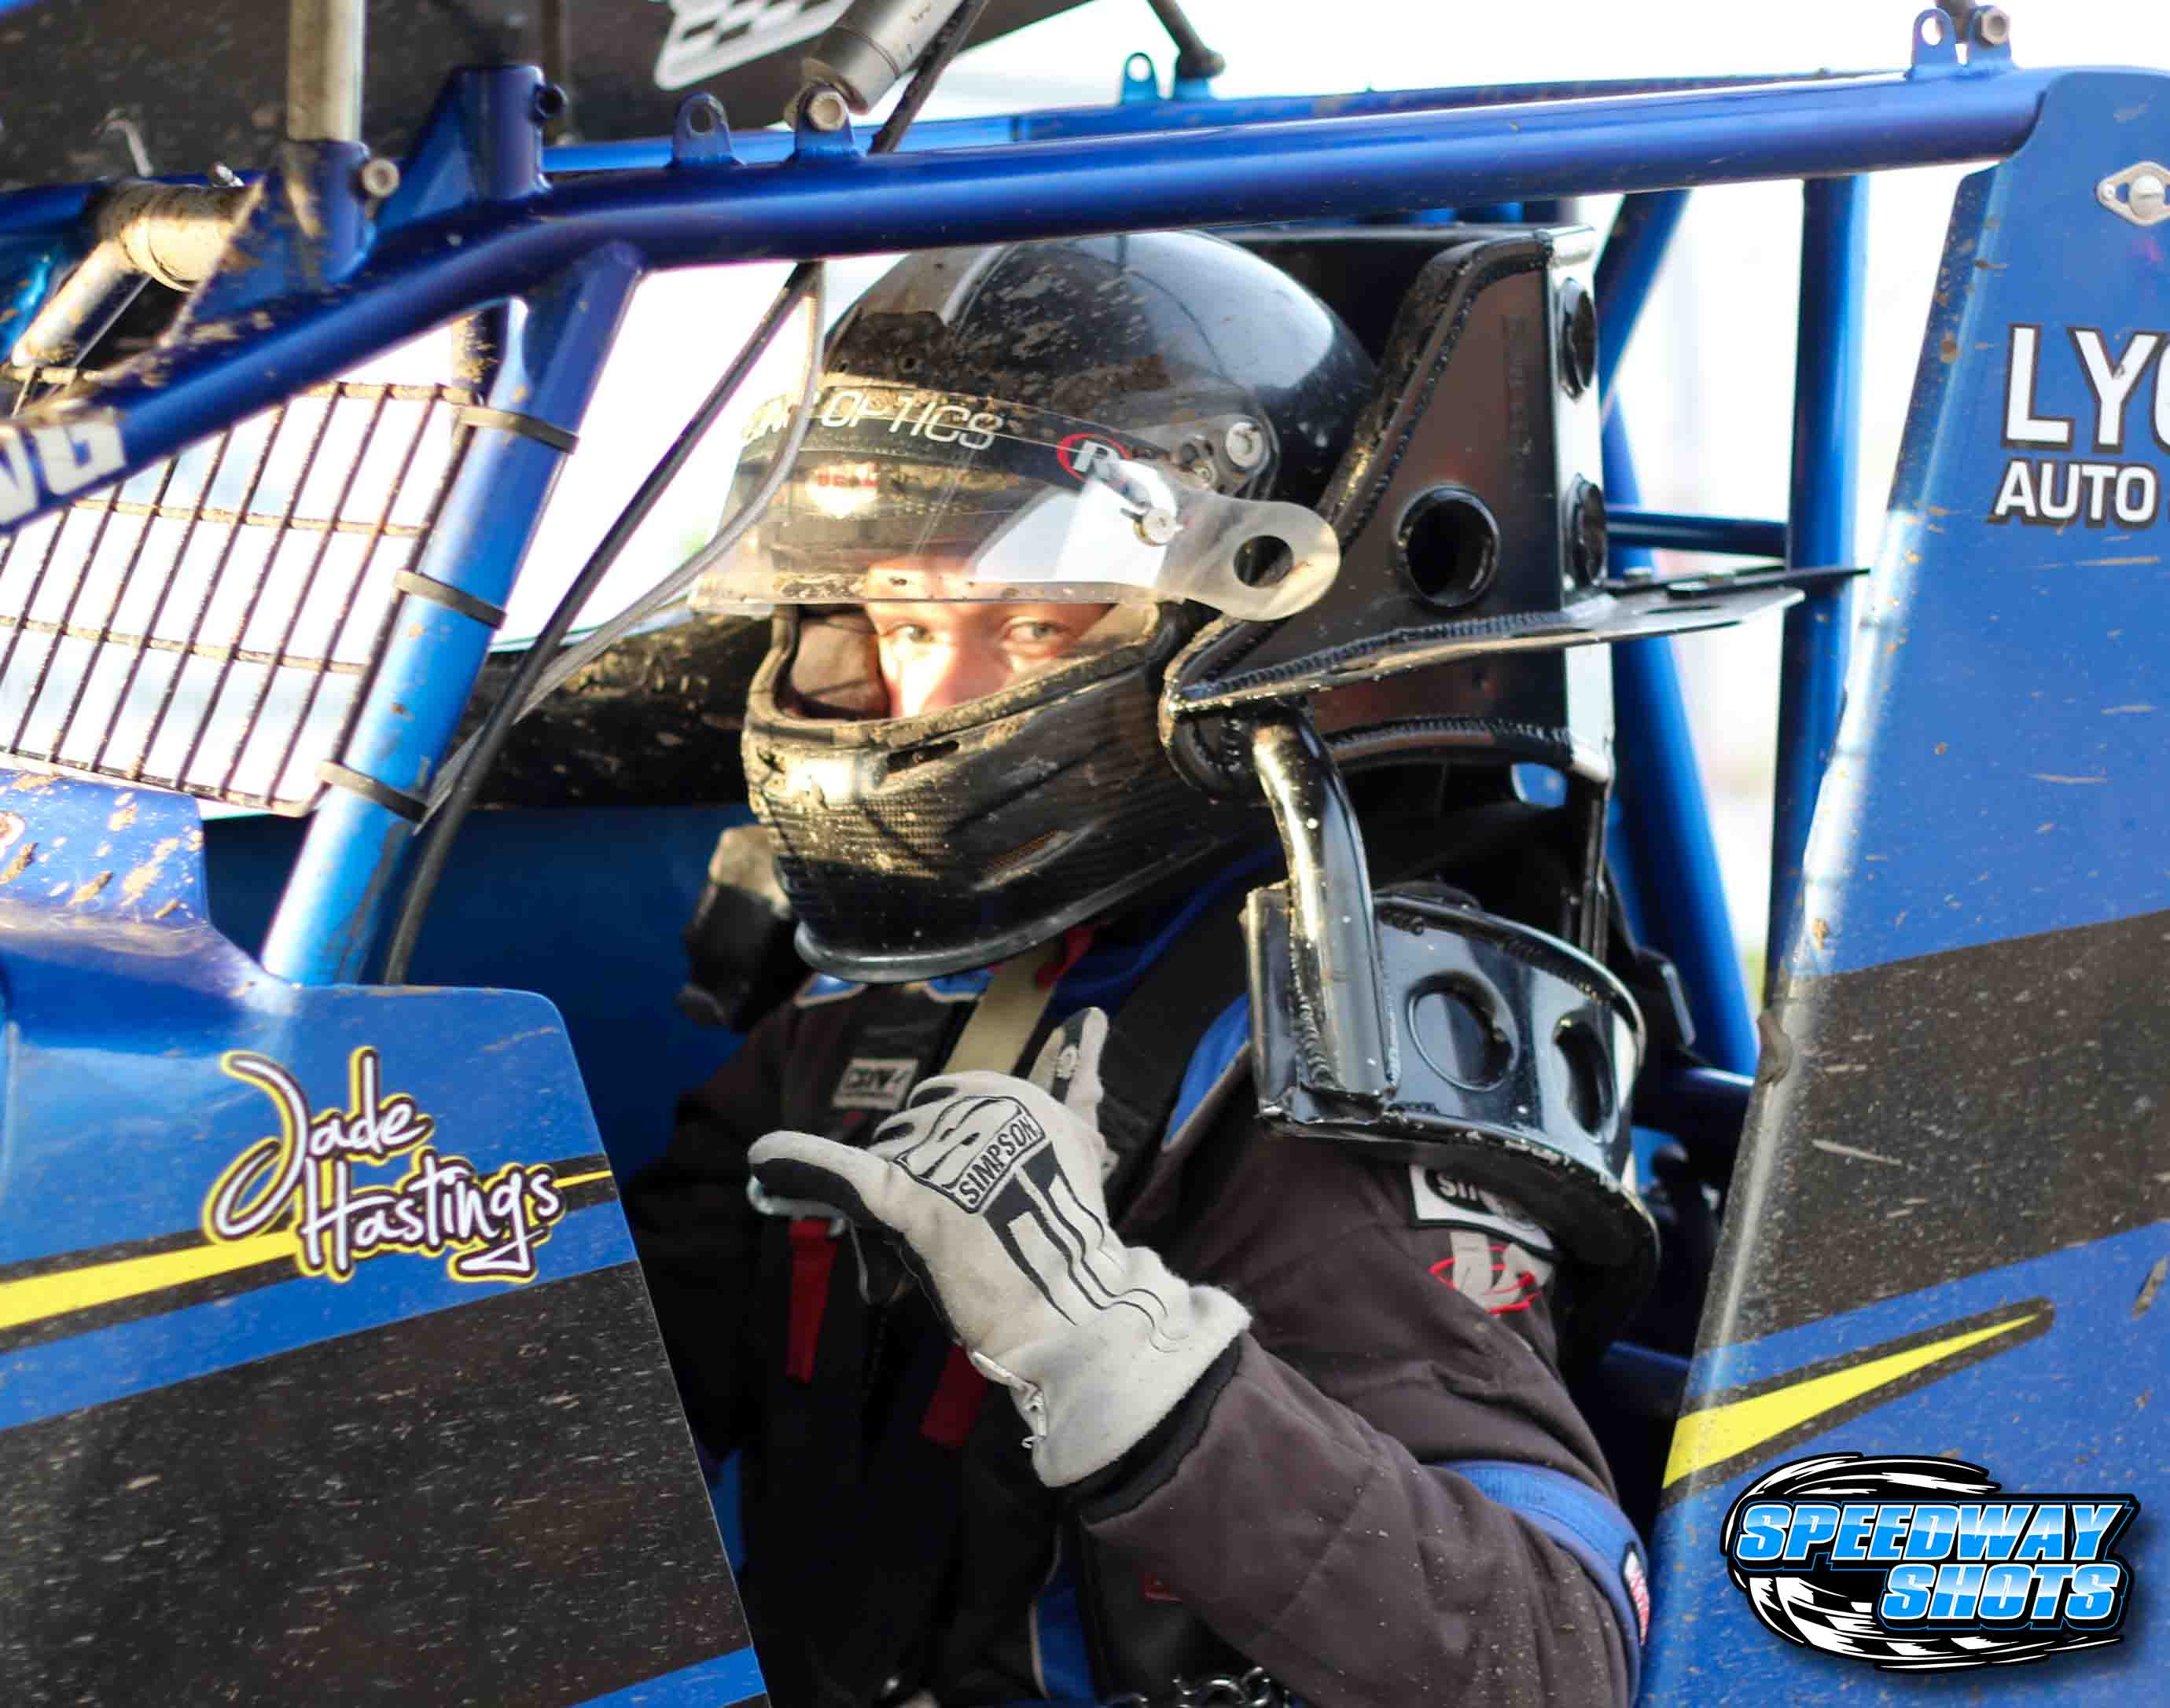 Jade Hastings, NOSA Sprint Cars, River Cities Speedway, Speedway Shots, Mike Spieker